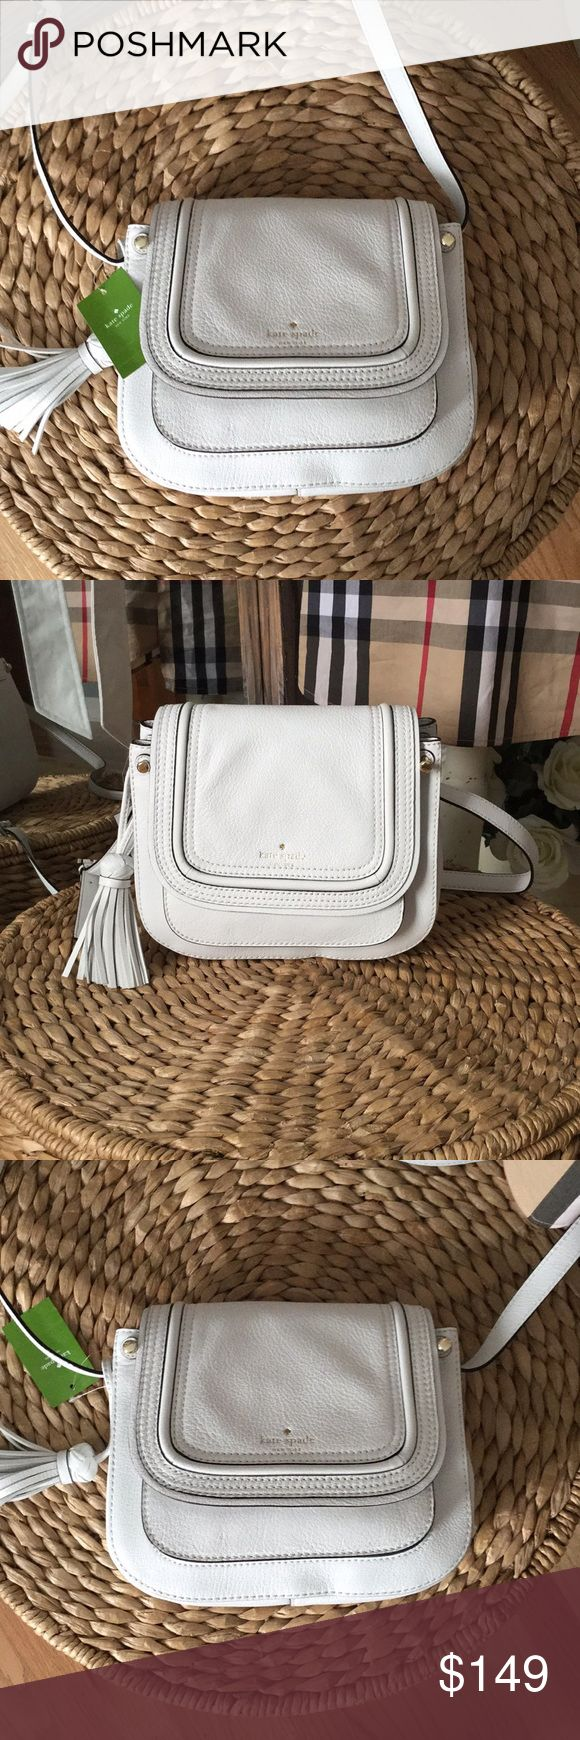 SALE, firm lowest price!!! Kate Spade leather bag Final price. This is a gorgeous soft leather bag from Kate Spade. This bag is the perfect size not too large and not top small with useful  pockets inside. White is predicted to be a hot trend in 2018. Will look gorgeous with just about anything kate spade Bags Crossbody Bags